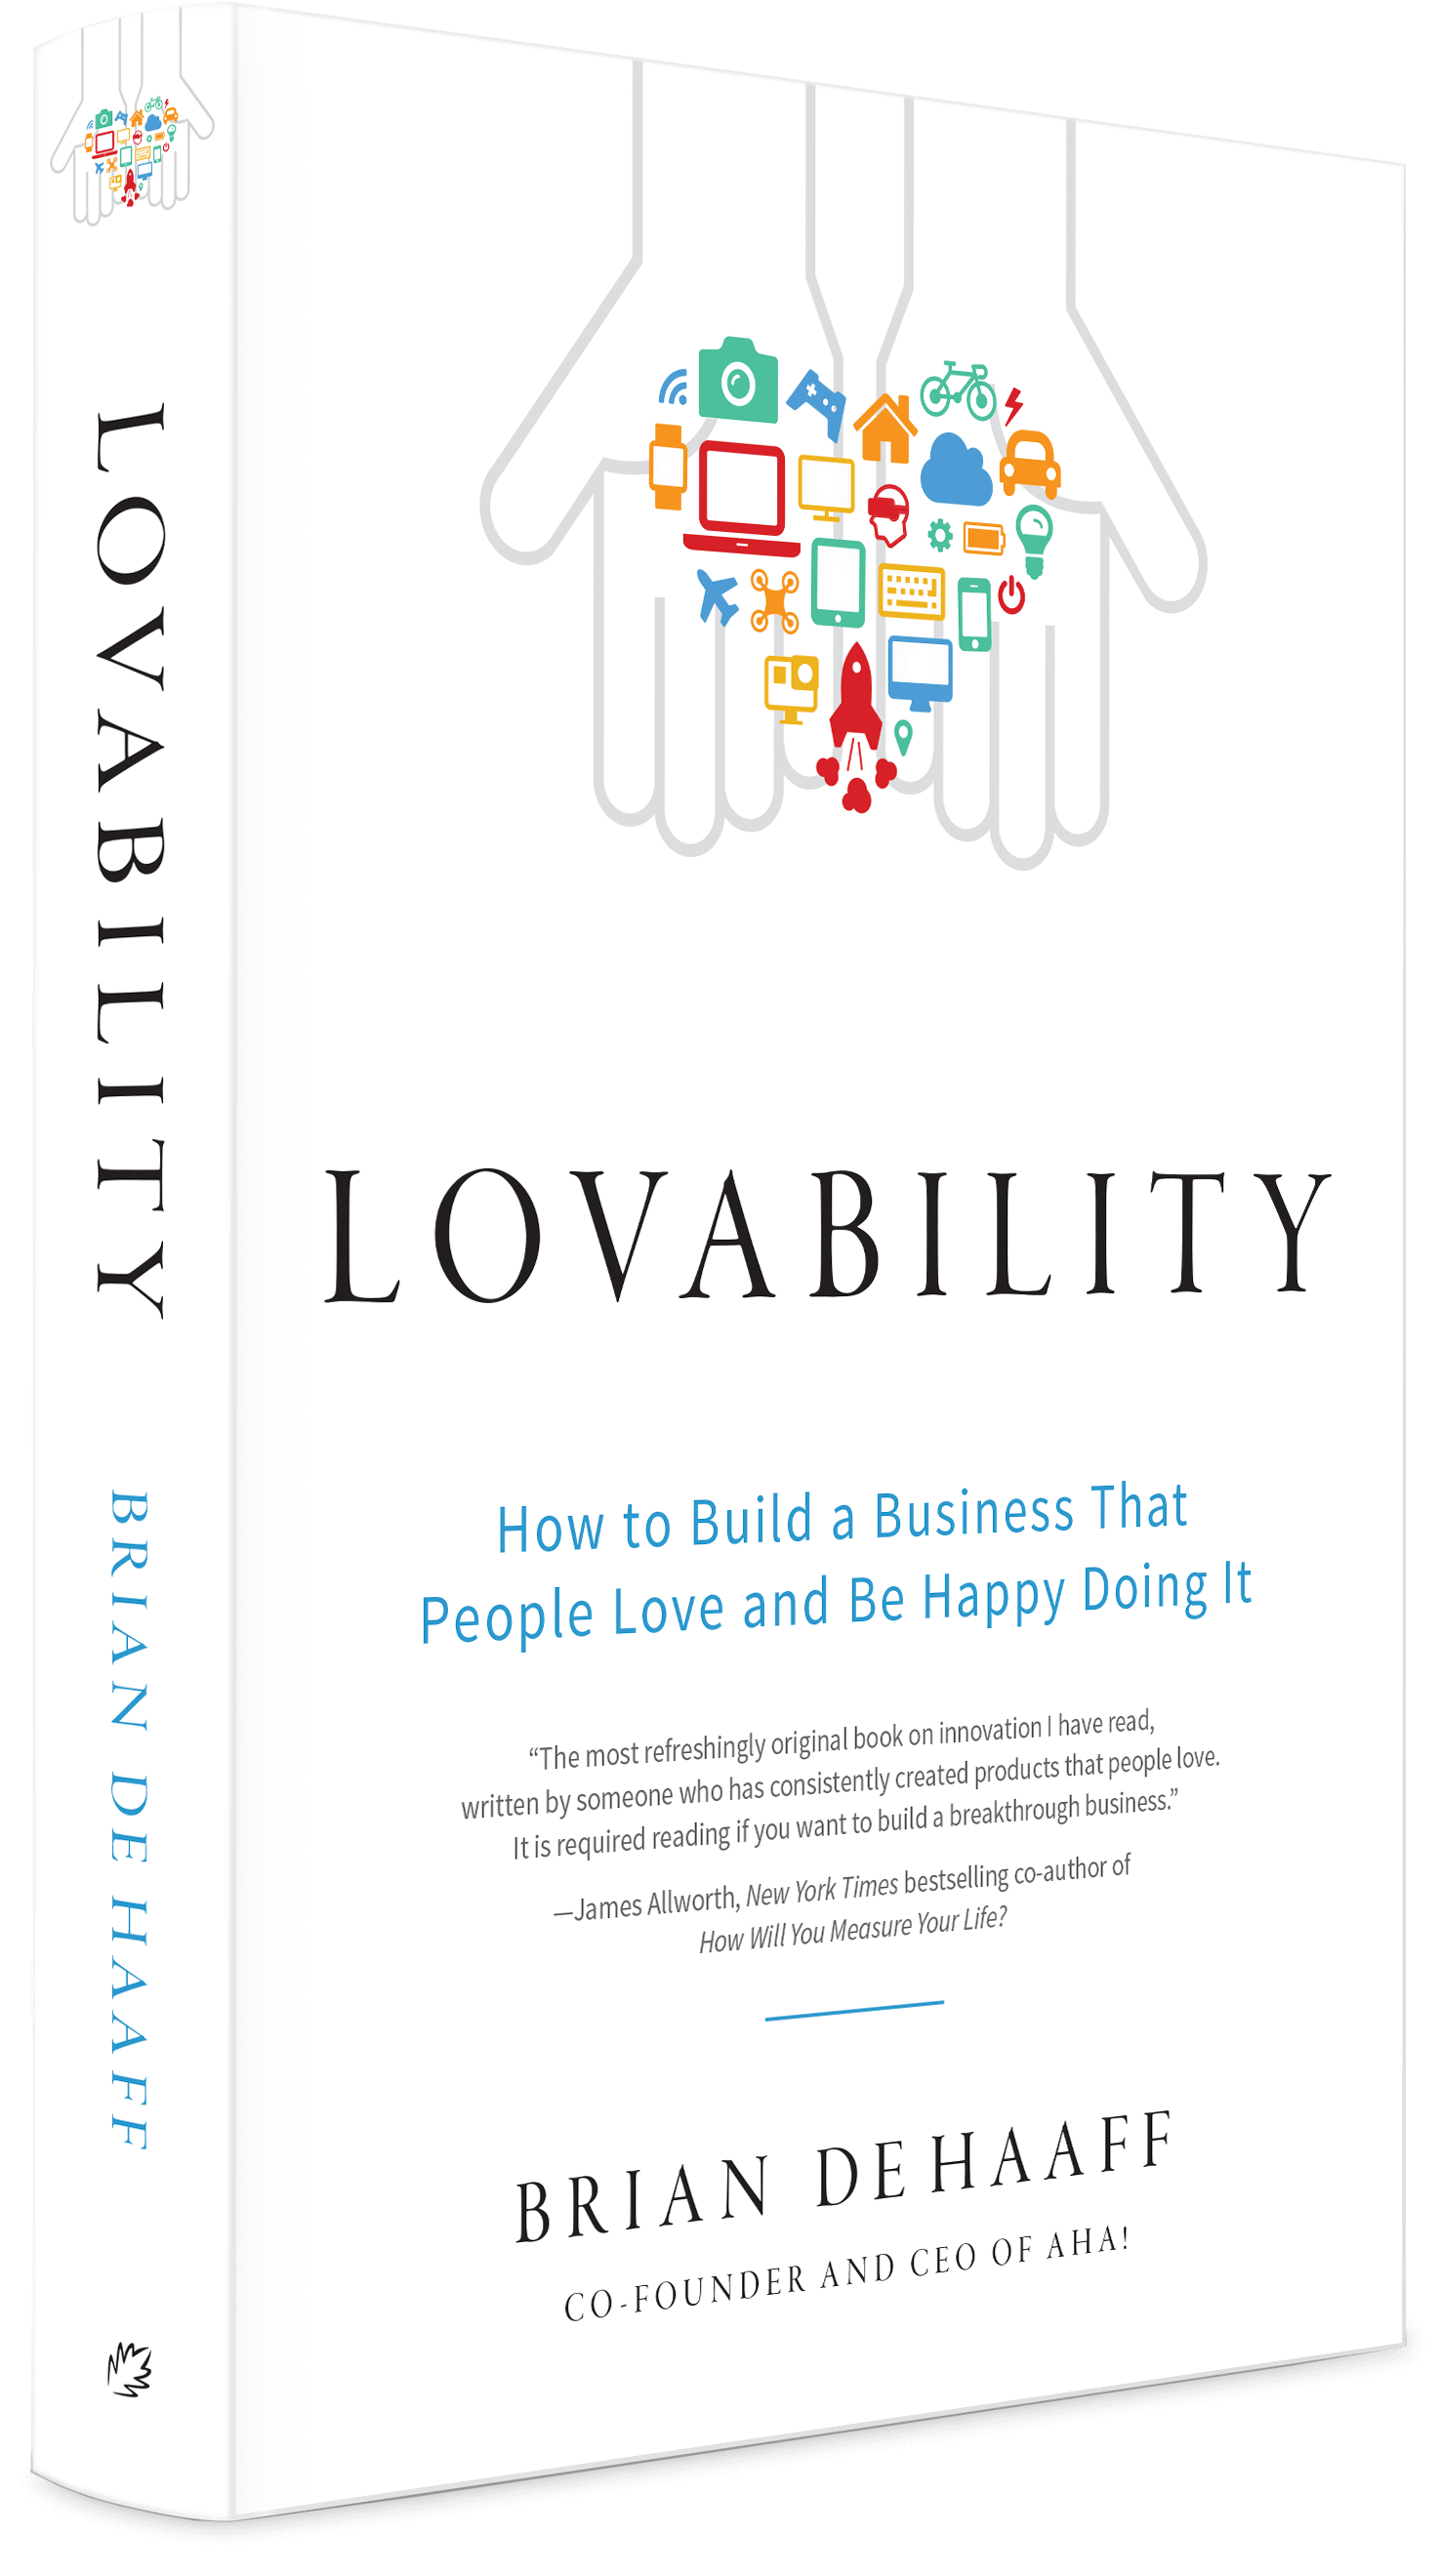 Lovability book